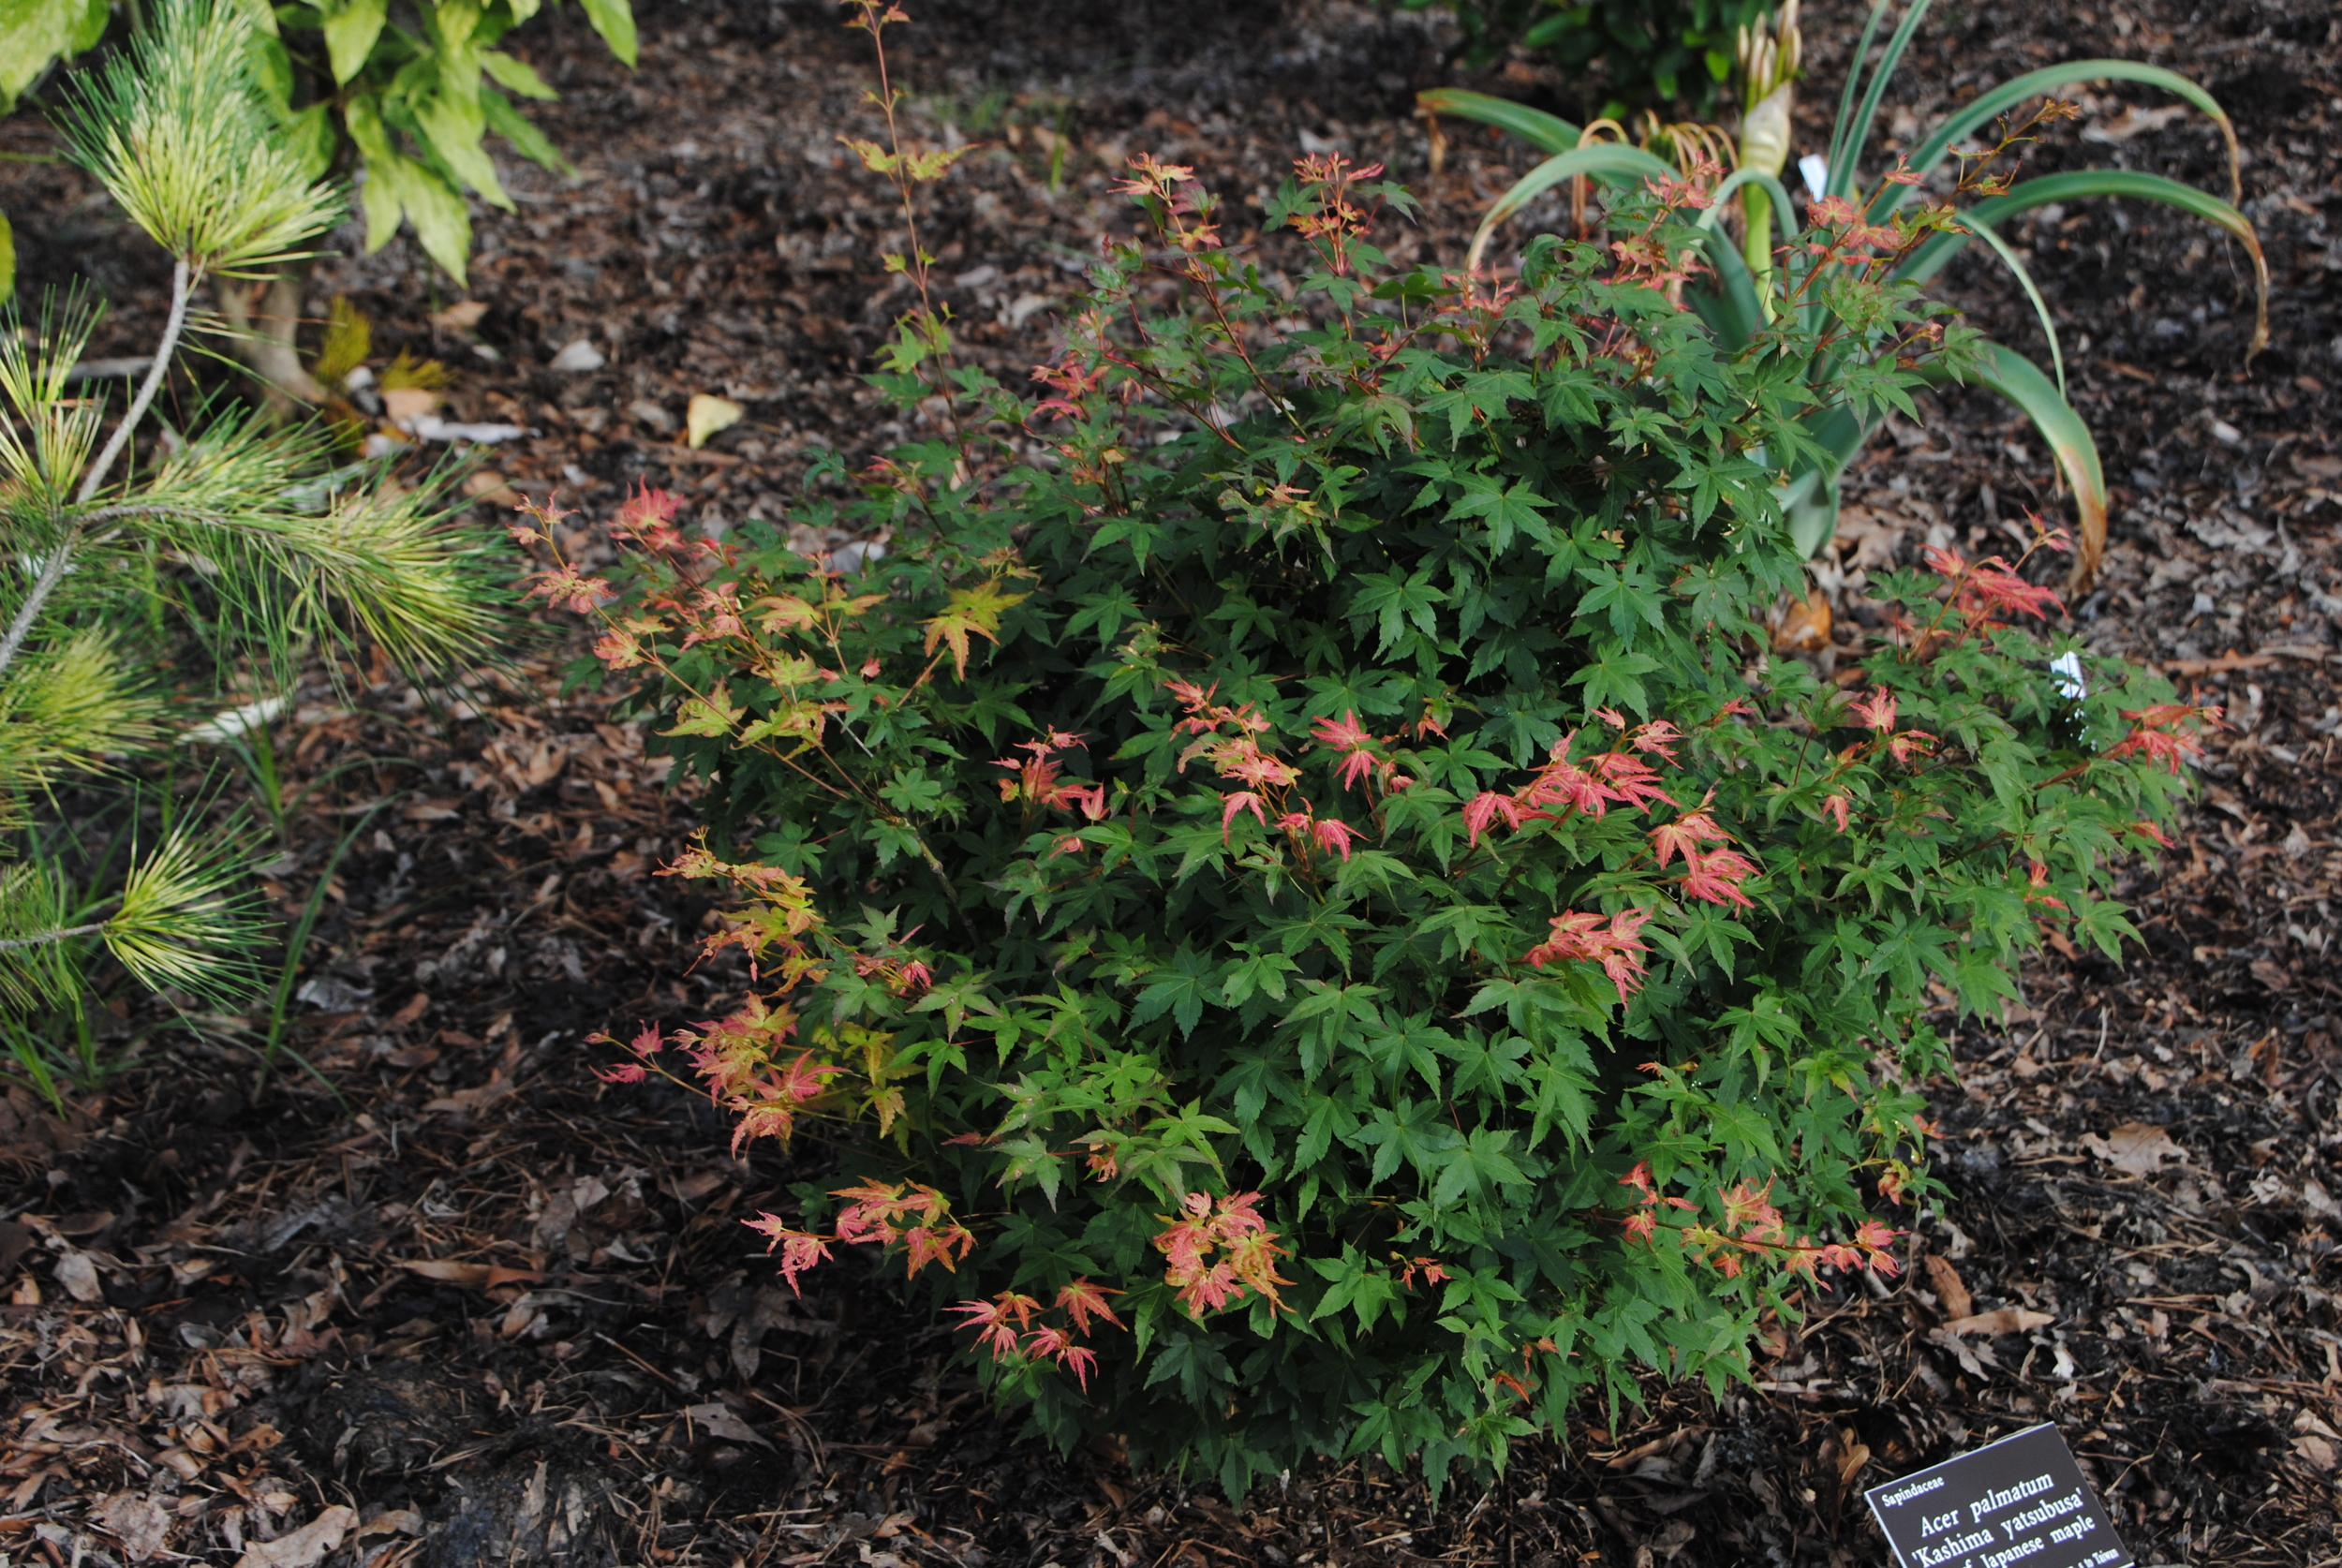 Yatsubusa in the name of a Japanese maple lets you know it will be a dwarf plant.